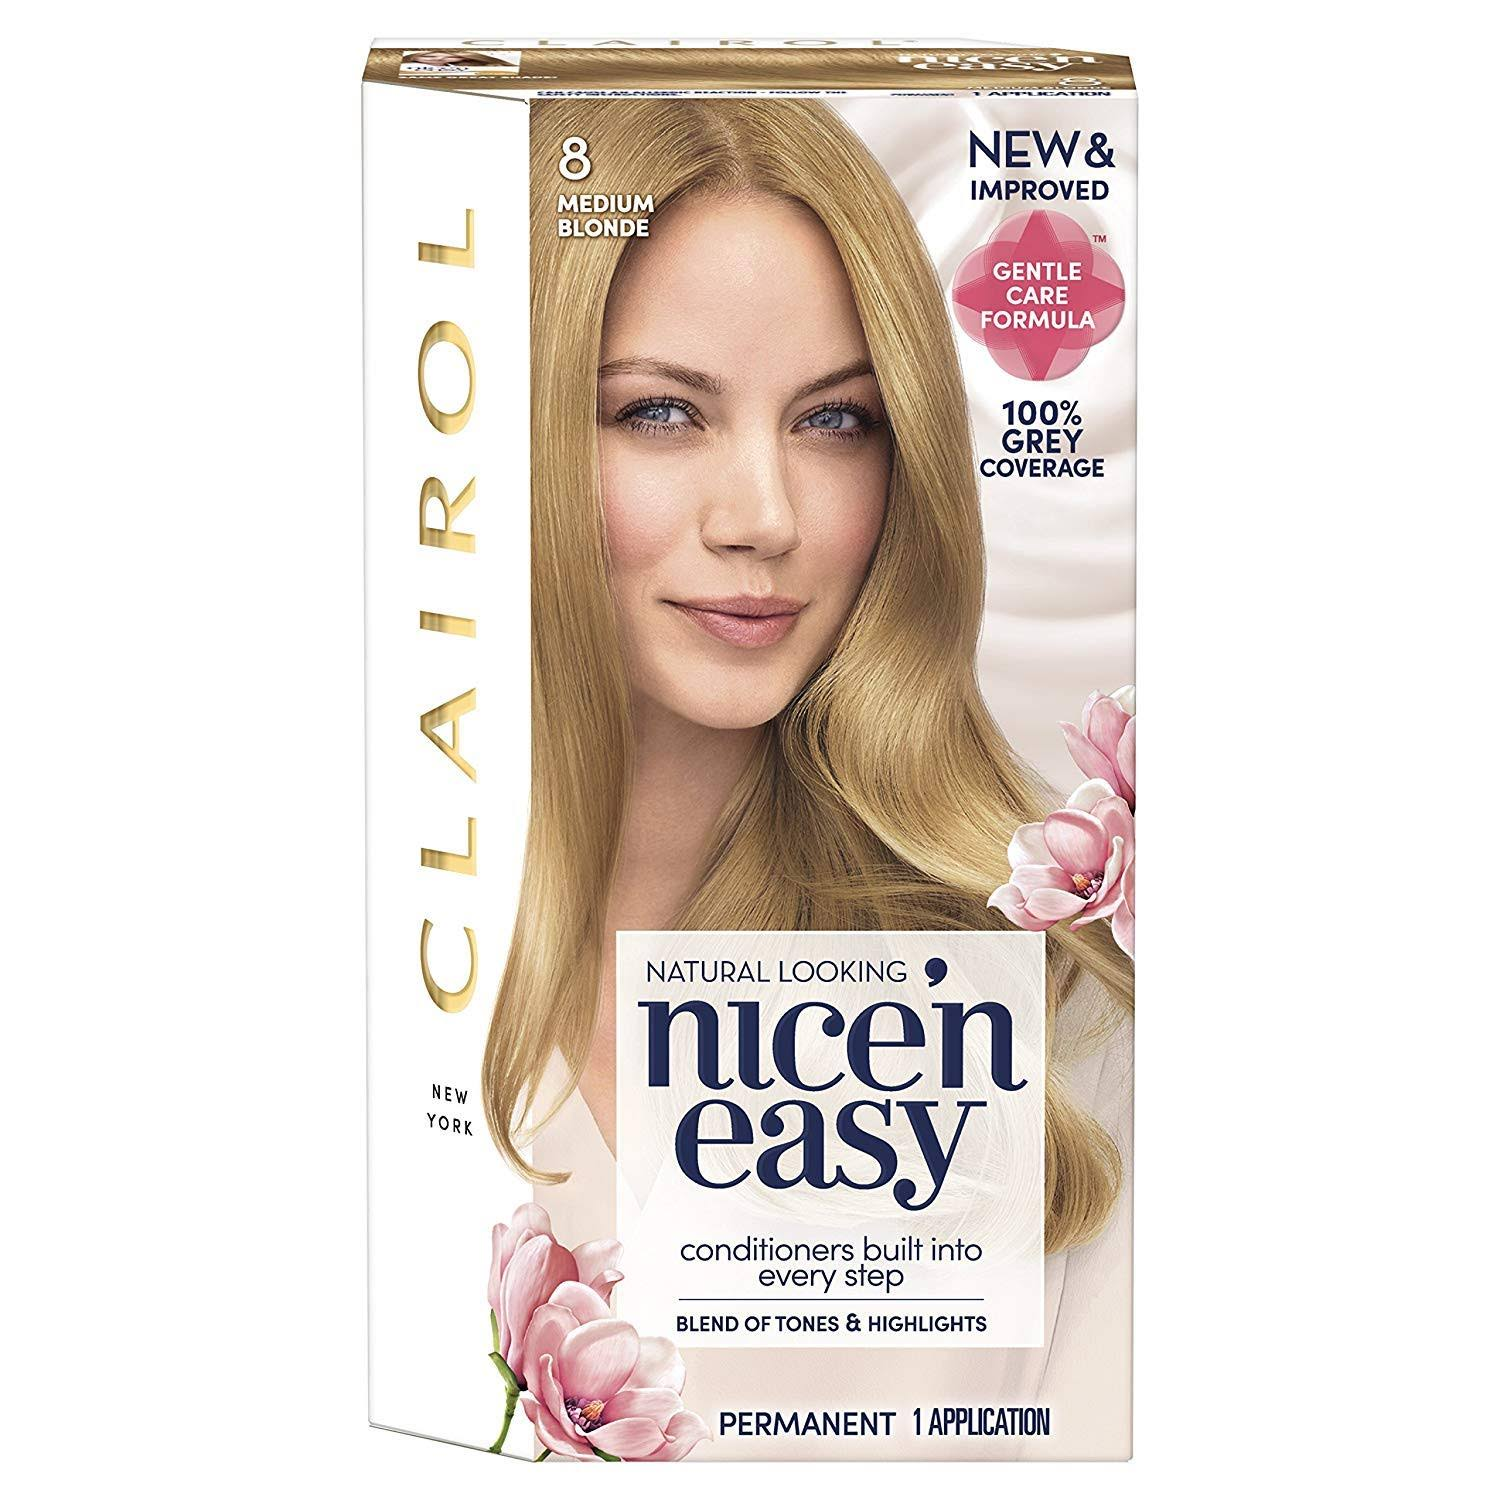 Clairol Nice'n Easy Permanent Hair Dye - 8 Medium Blonde